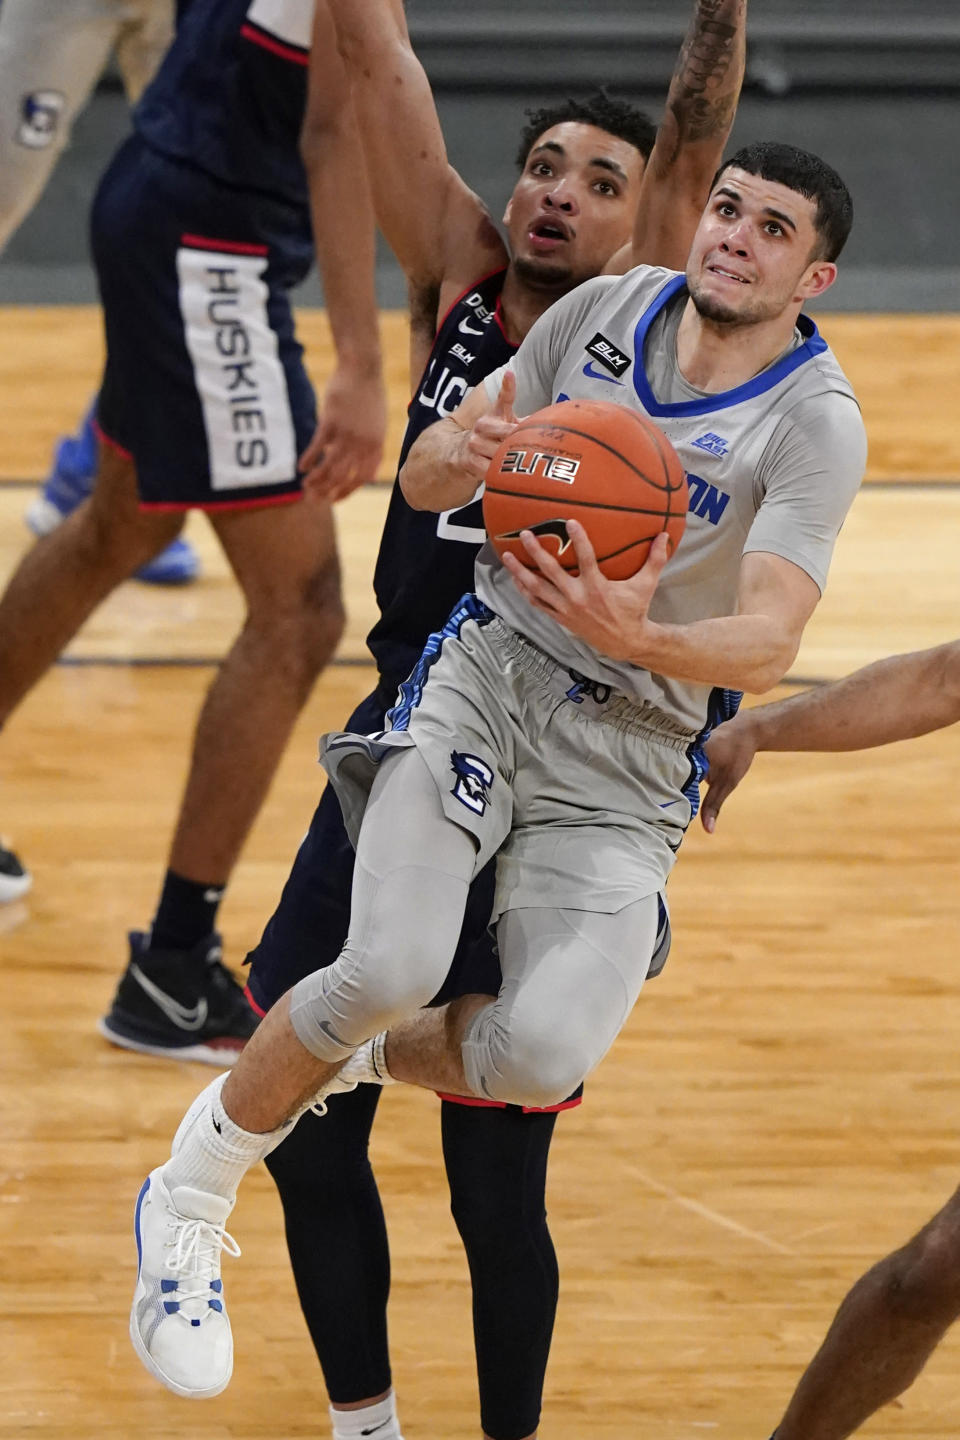 Creighton's Marcus Zegarowski drives past Connecticut's James Bouknight during the second half of an NCAA college basketball game in the semifinals in the Big East men's tournament Friday, March 12, 2021, in New York. (AP Photo/Frank Franklin II)